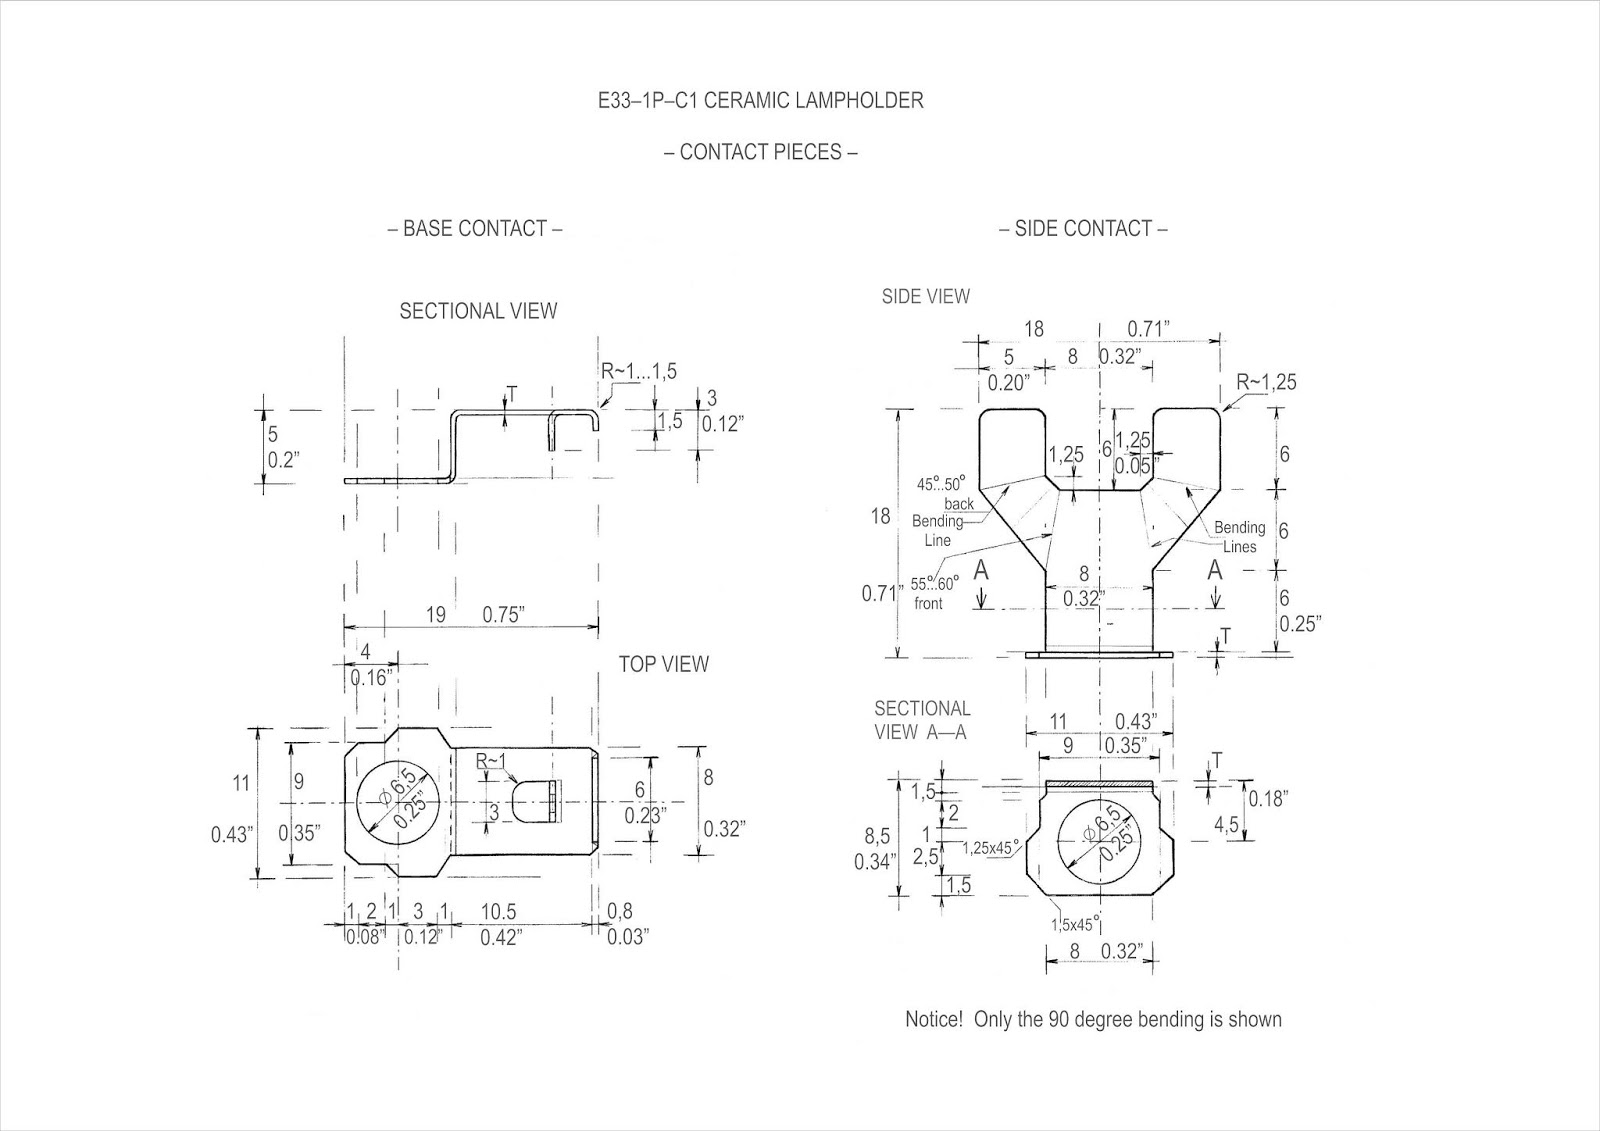 Hid Lamp Specifications